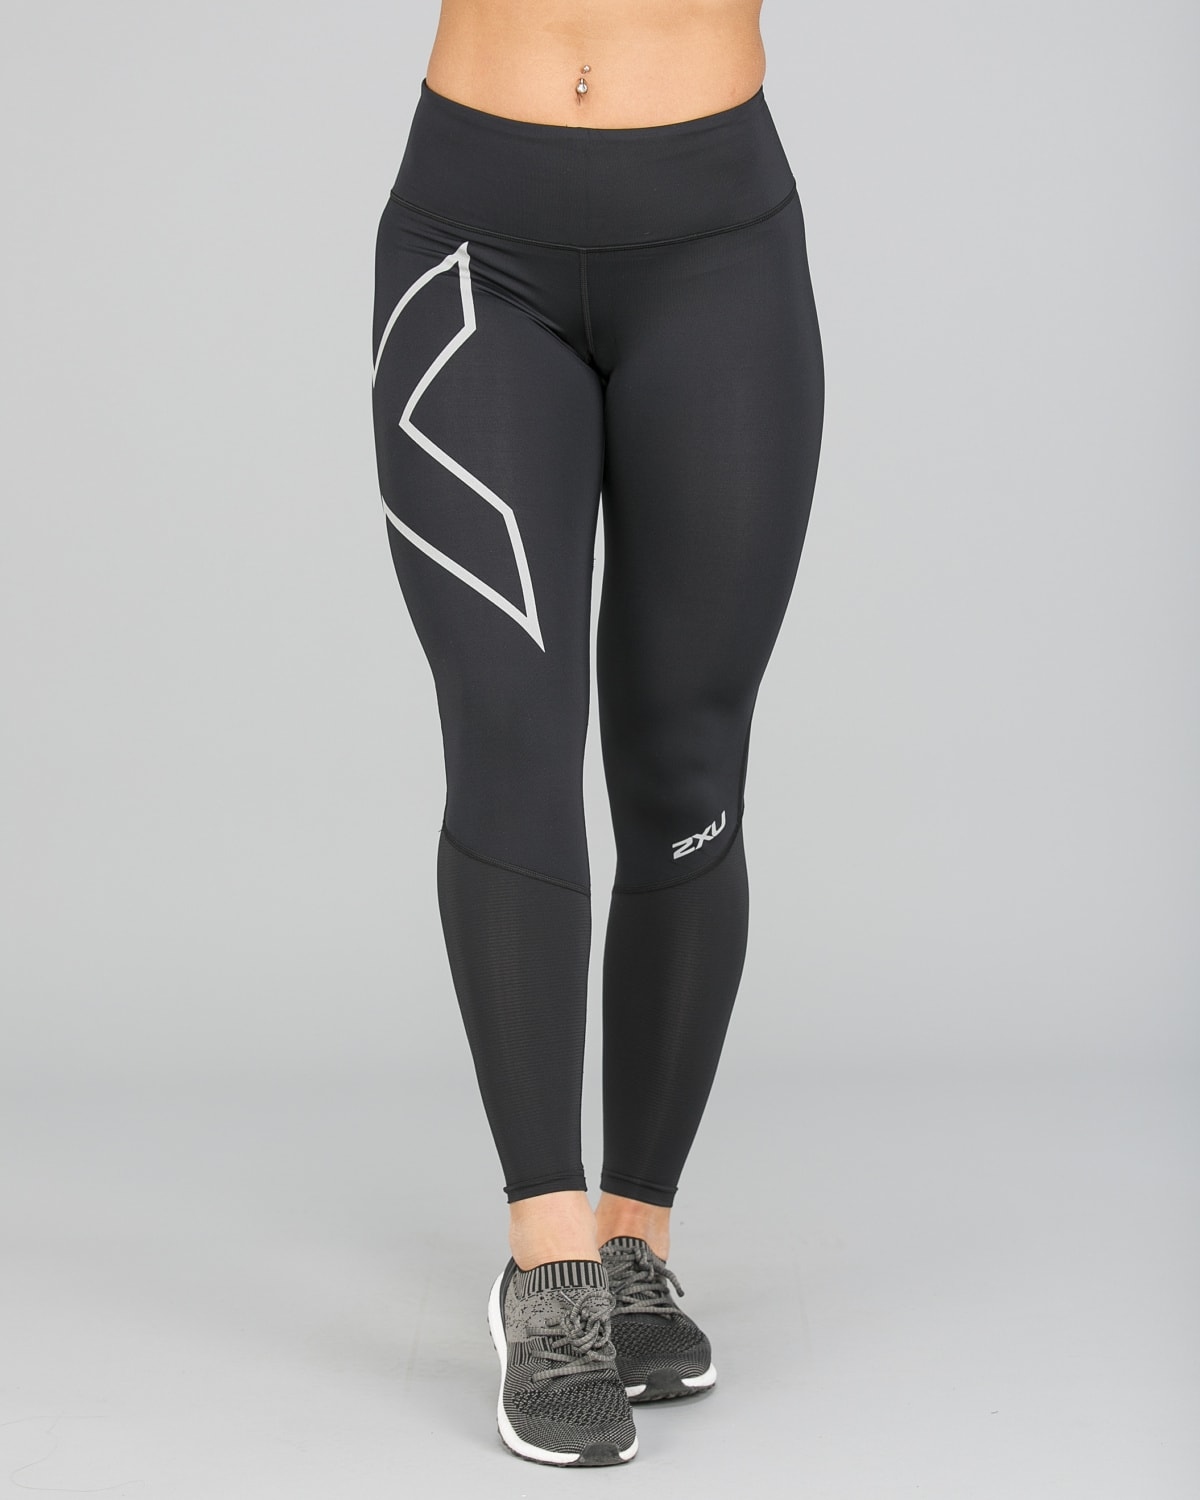 2XU Run Mid-Rise Dash Comp Tights Women – Black:Silver Reflective7